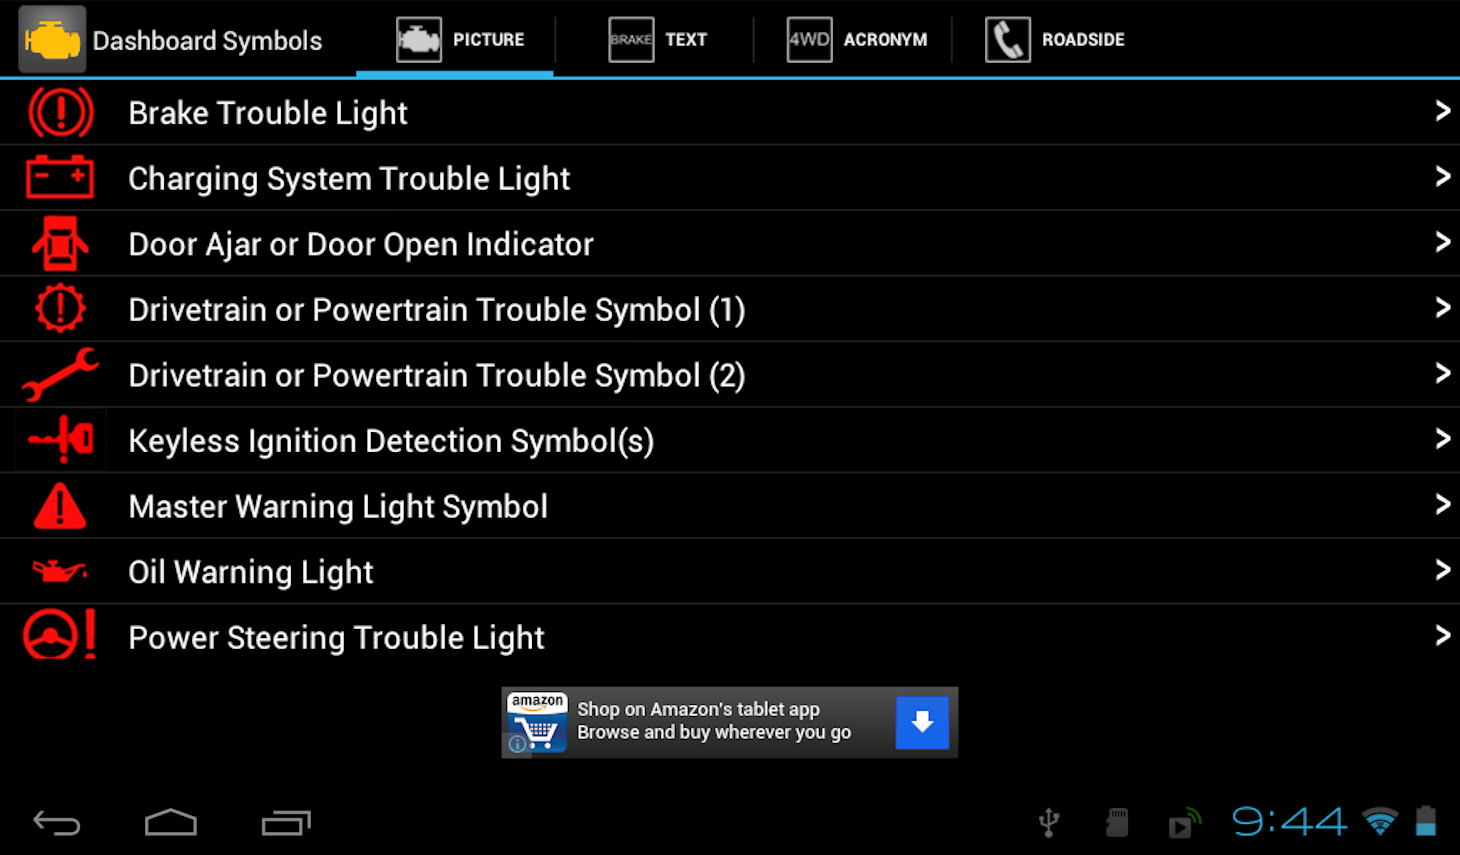 Vehicle Dashboard Symbols APK Download Android Cats - Car sign on dashboarddont panic common dashboard warnings you need to know part